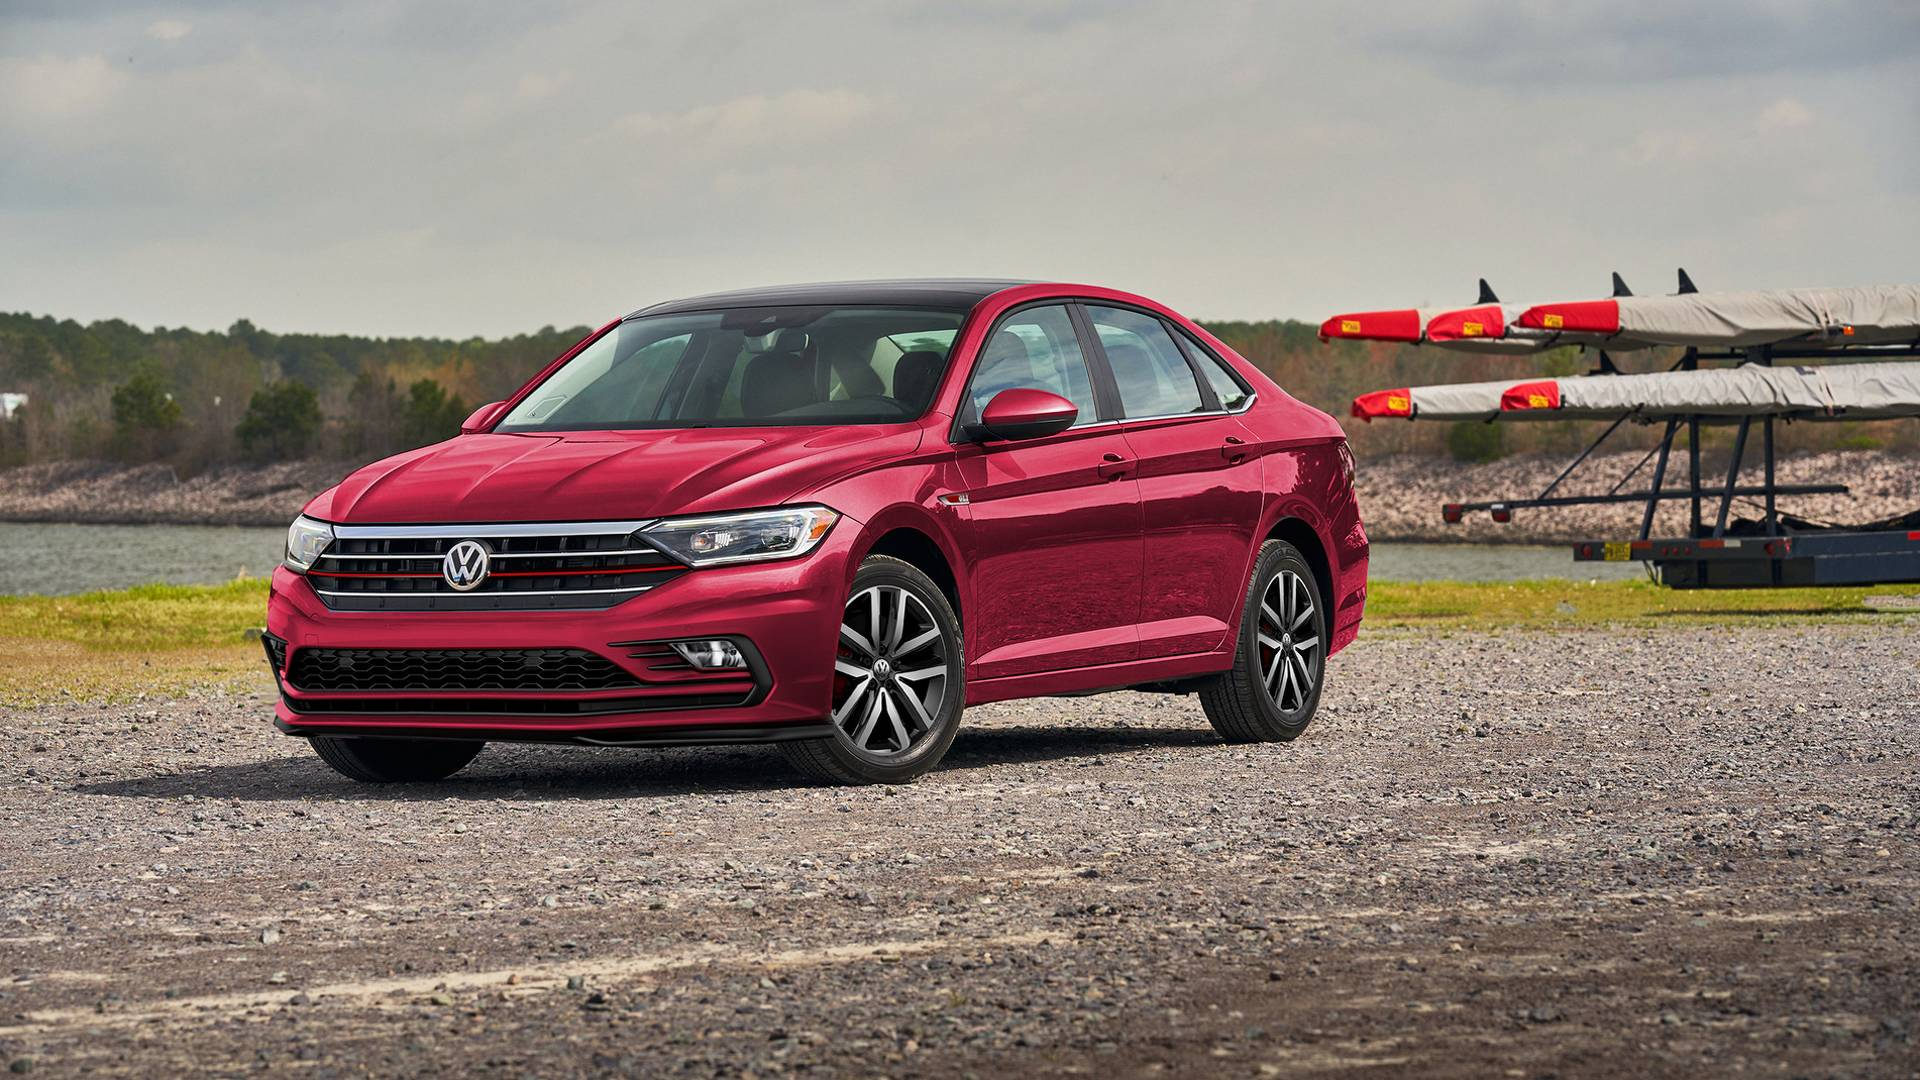 87 The Best 2020 Vw Jetta Gli Configurations